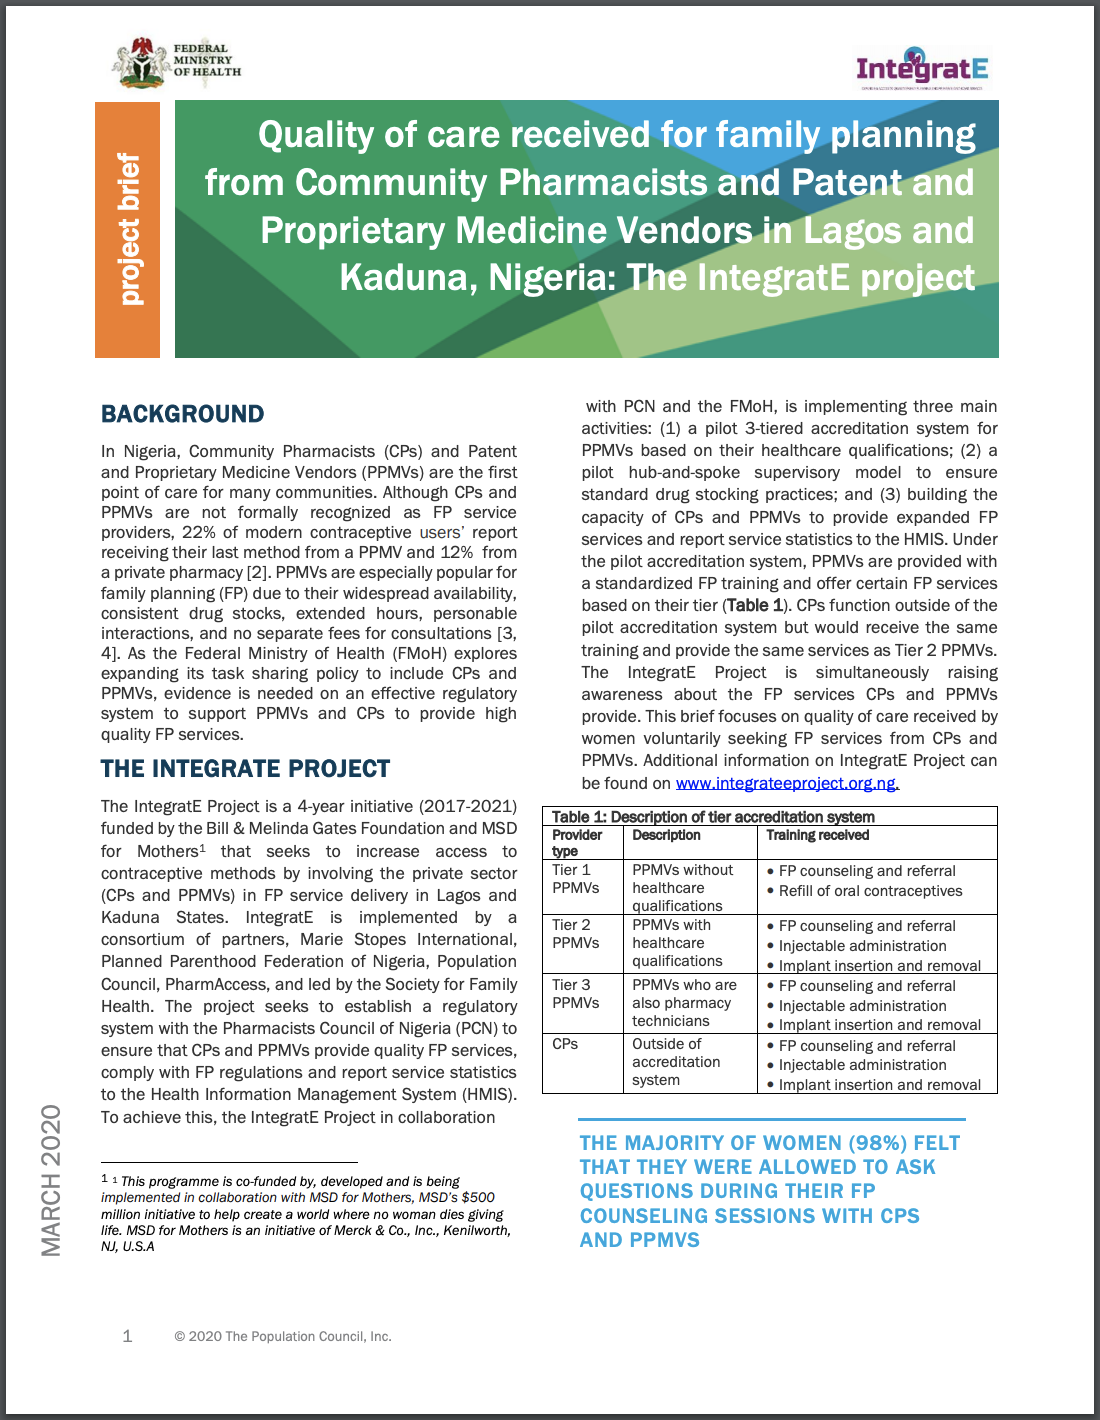 Quality of care received for family planning from Community Pharmacists and Patent and Proprietary Medicine Vendors in Lagos and Kaduna, Nigeria: The IntegratE project